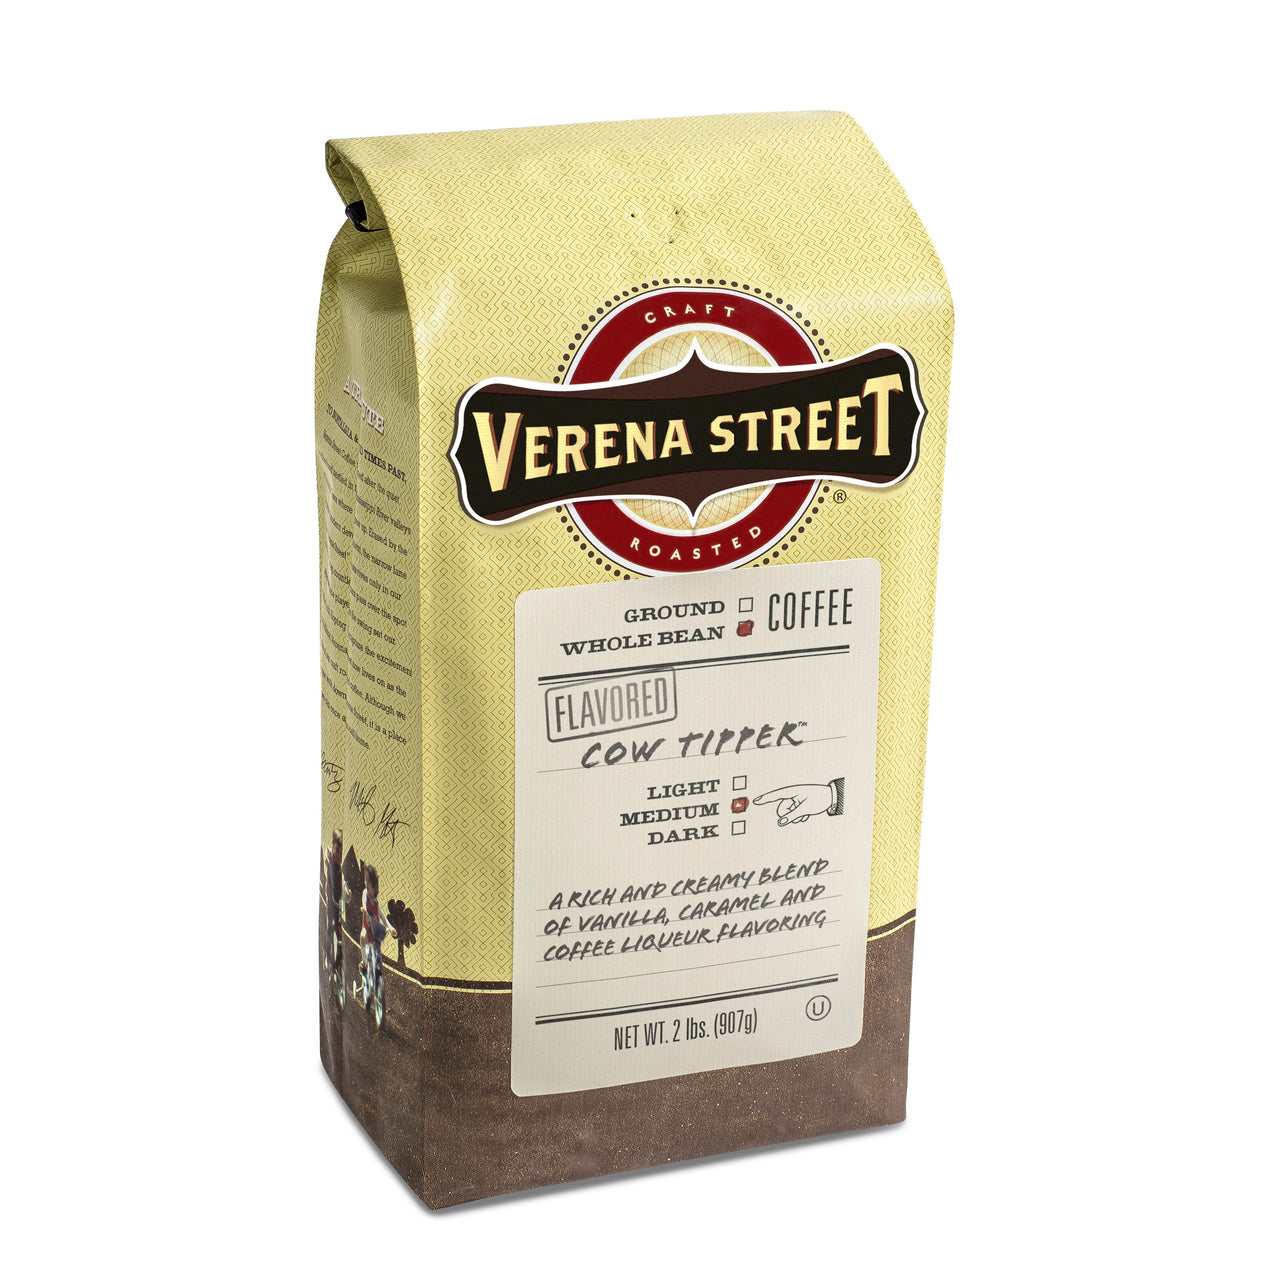 Cow Tipper® whole bean - Verena Street Coffee Co.